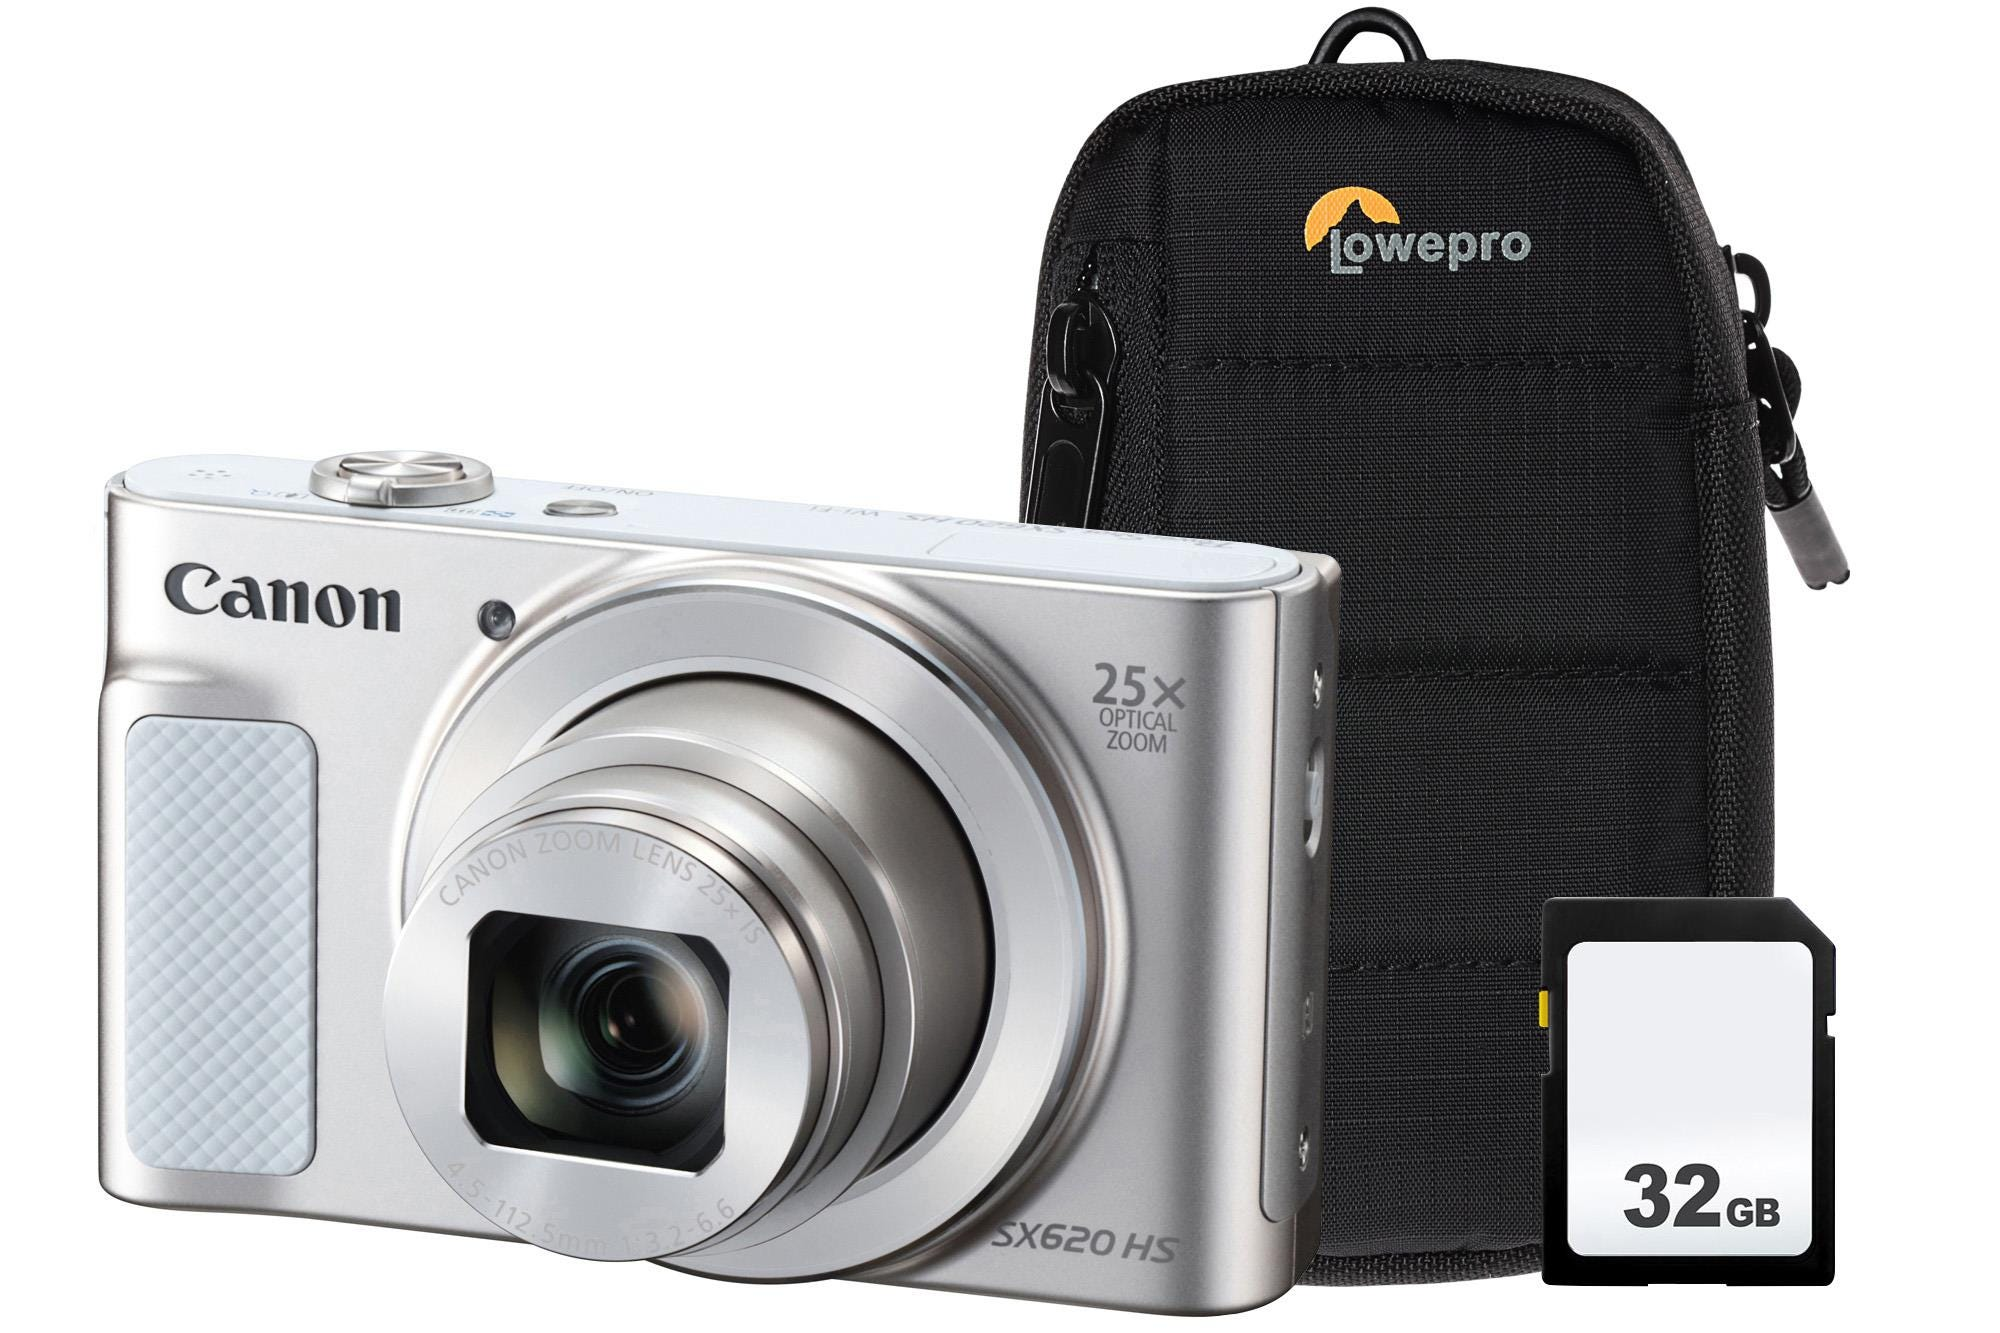 Canon PowerShot SX620 HS 21.1MP 25x Zoom Compact Camera, 32GB SDHC Card    Case - White